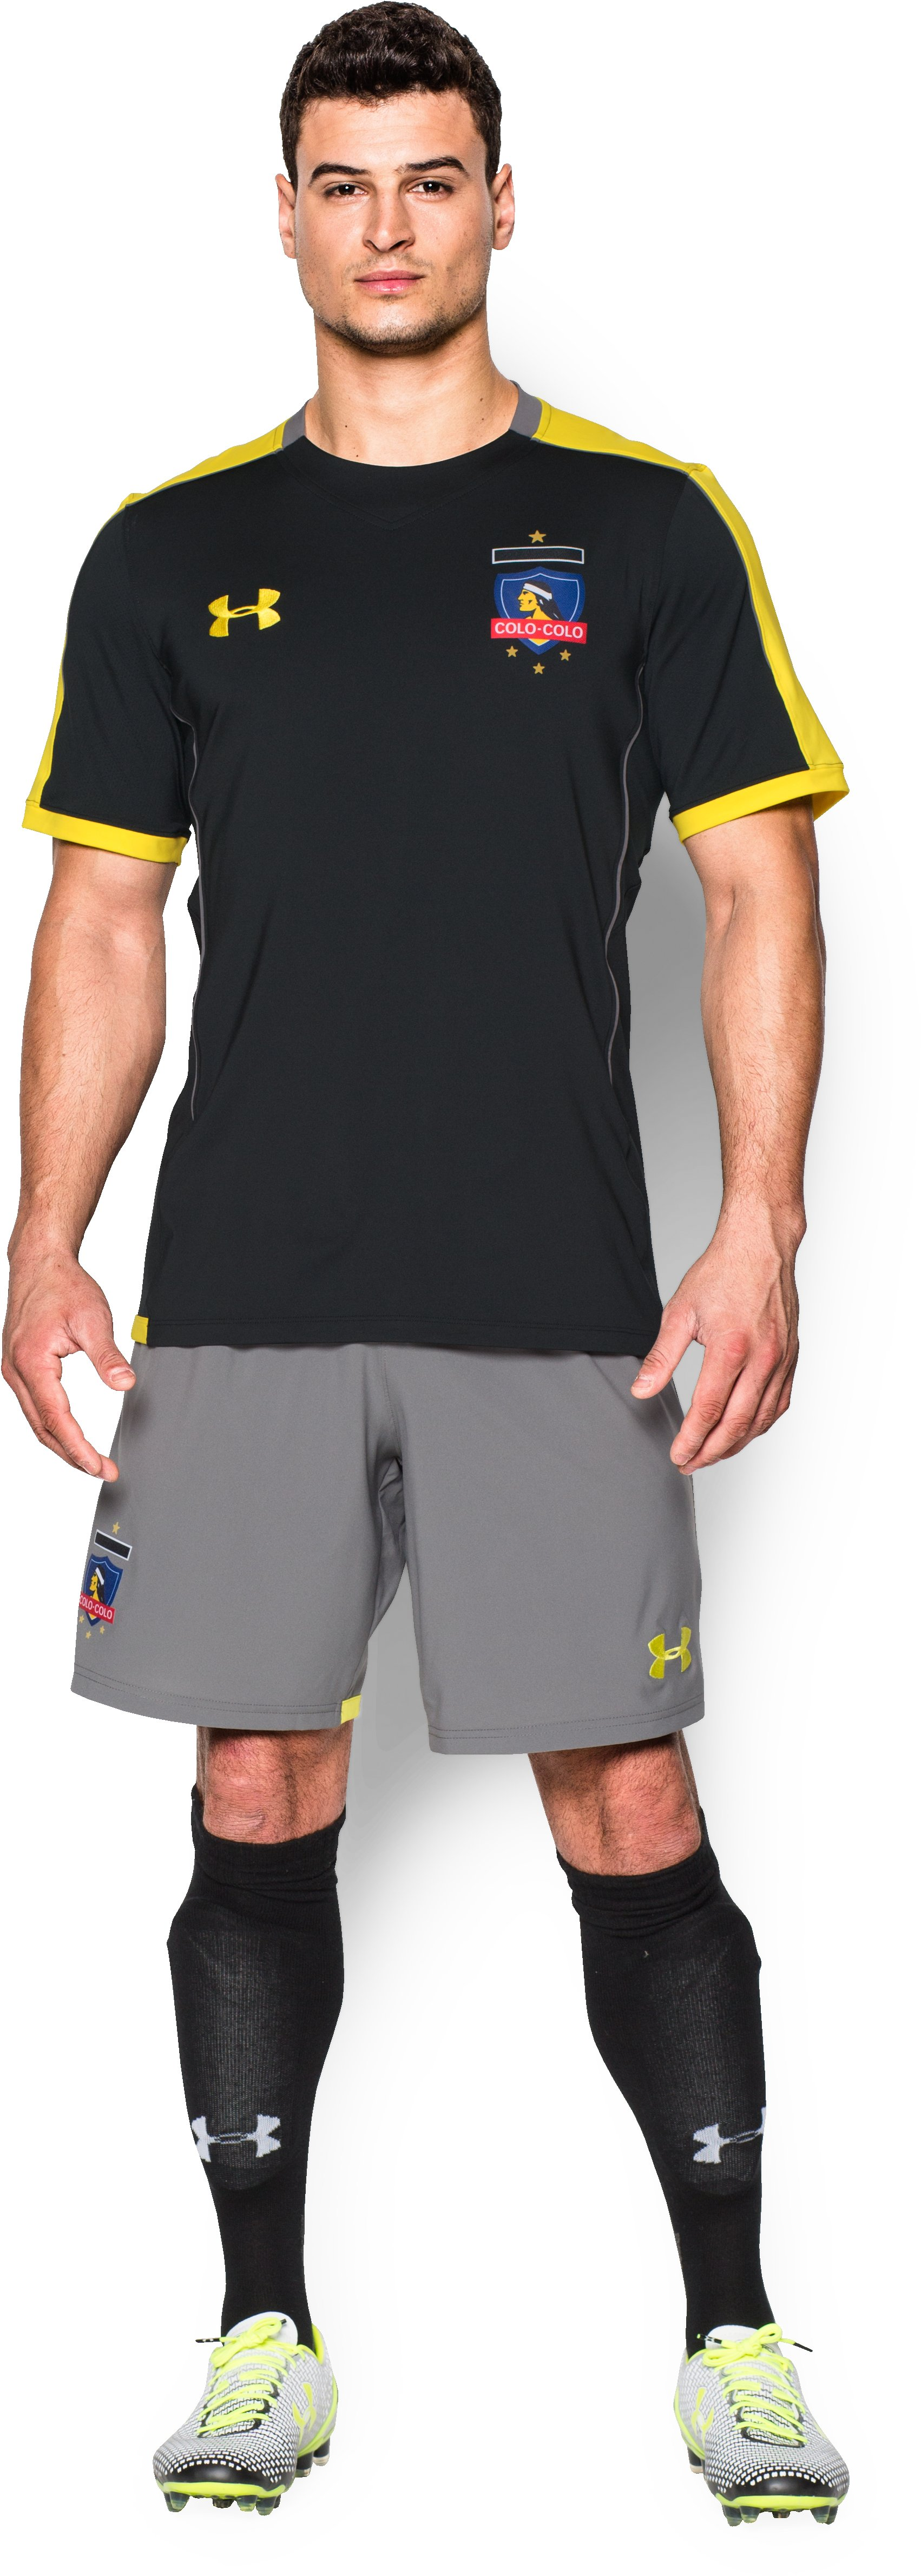 Men's Colo-Colo Short Sleeve Training Shirt, Black